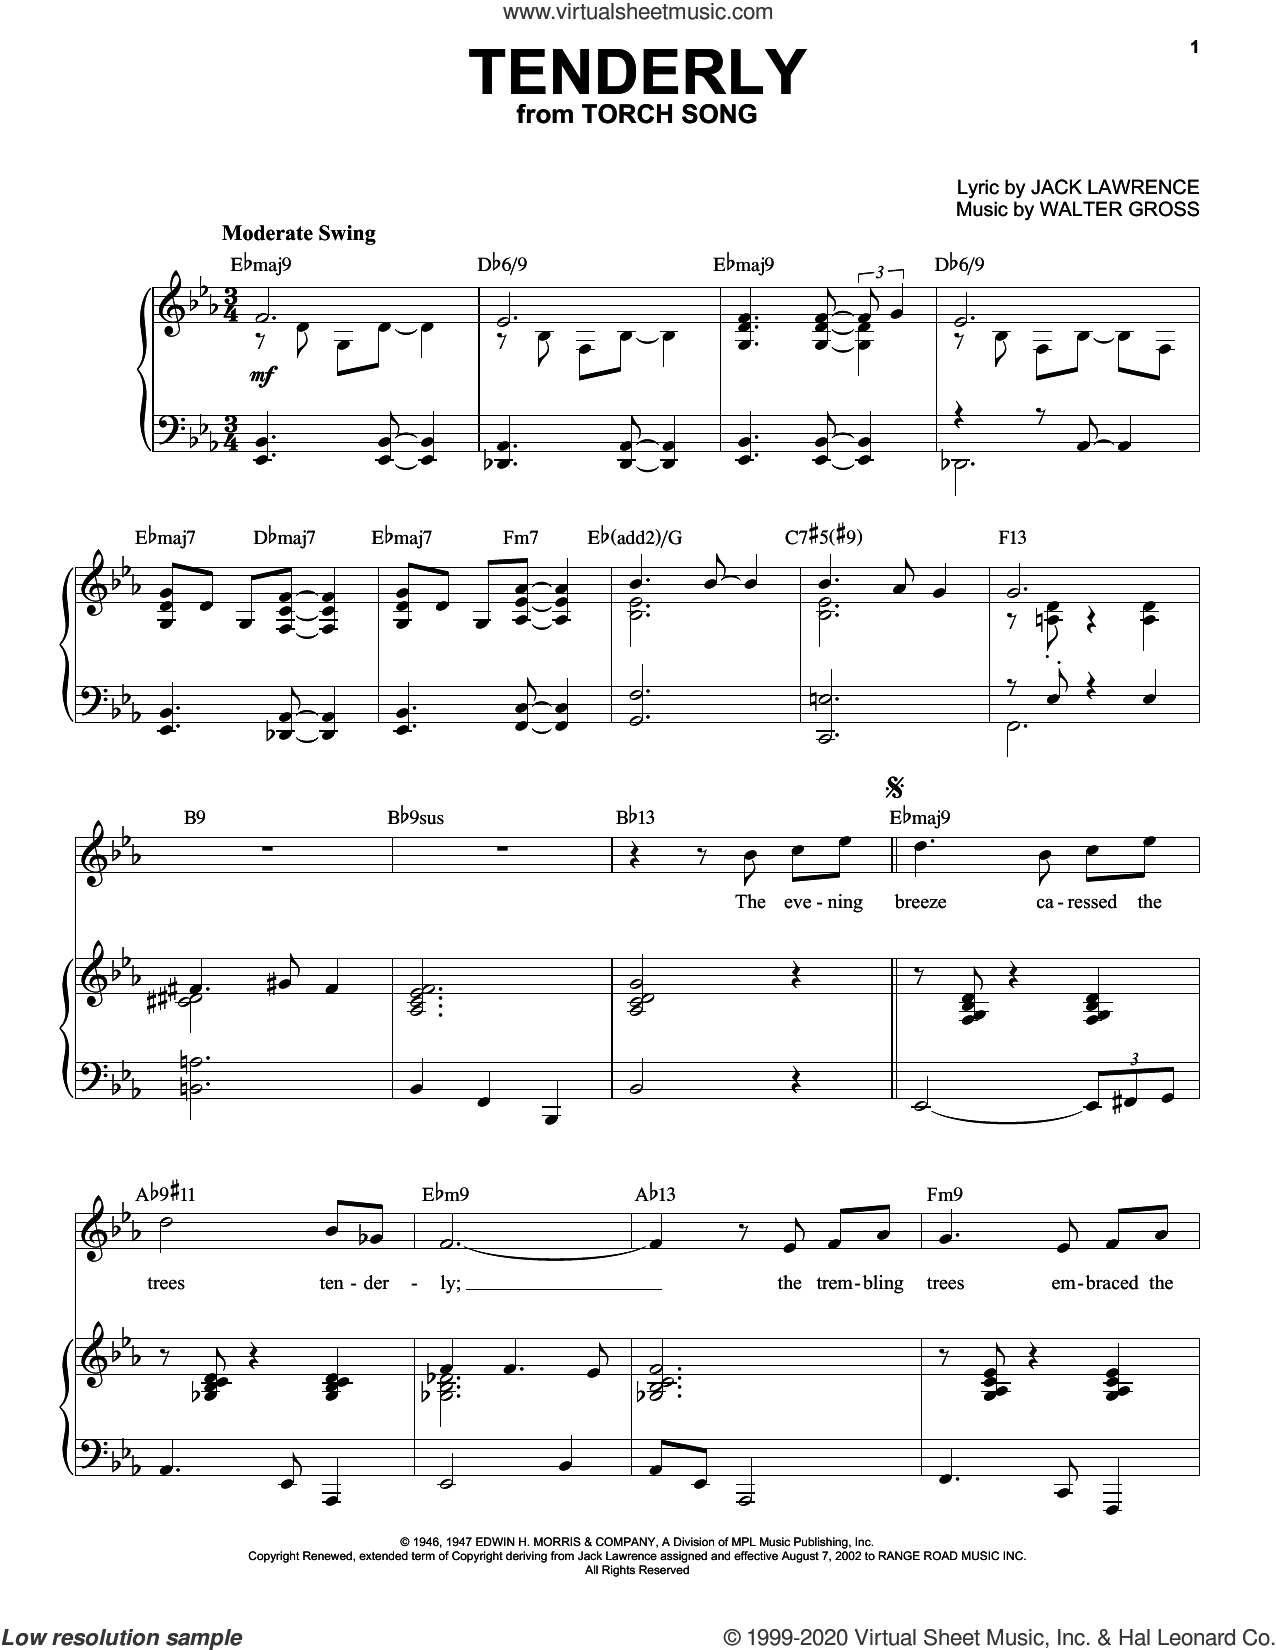 Tenderly [Jazz version] (arr. Brent Edstrom) sheet music for voice and piano (High Voice) by Jack Lawrence, Brent Edstrom, Jack Lawrence and Walter Gross and Walter Gross, intermediate skill level